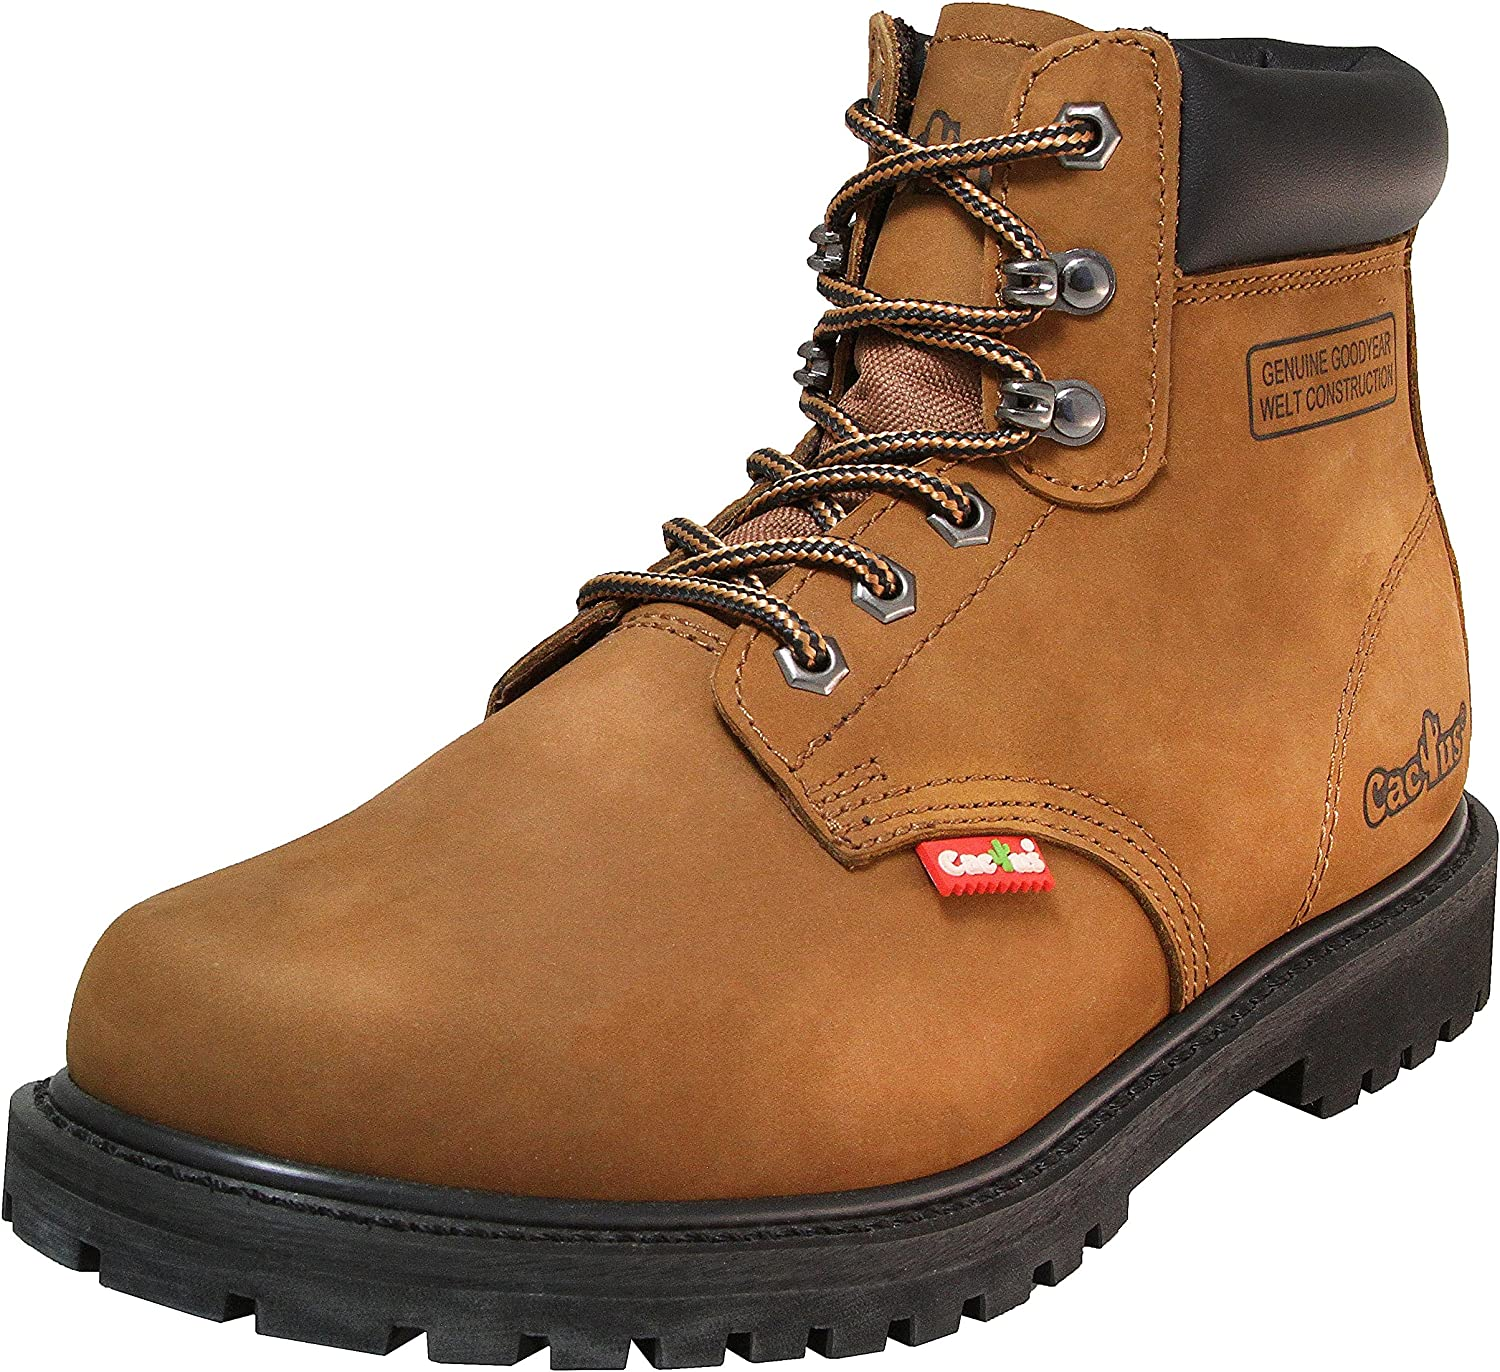 """Cactus Men's Work Boots LITE Soft 6"""" Rubber Fees free!! Toe outlet Nubuck Leather S"""